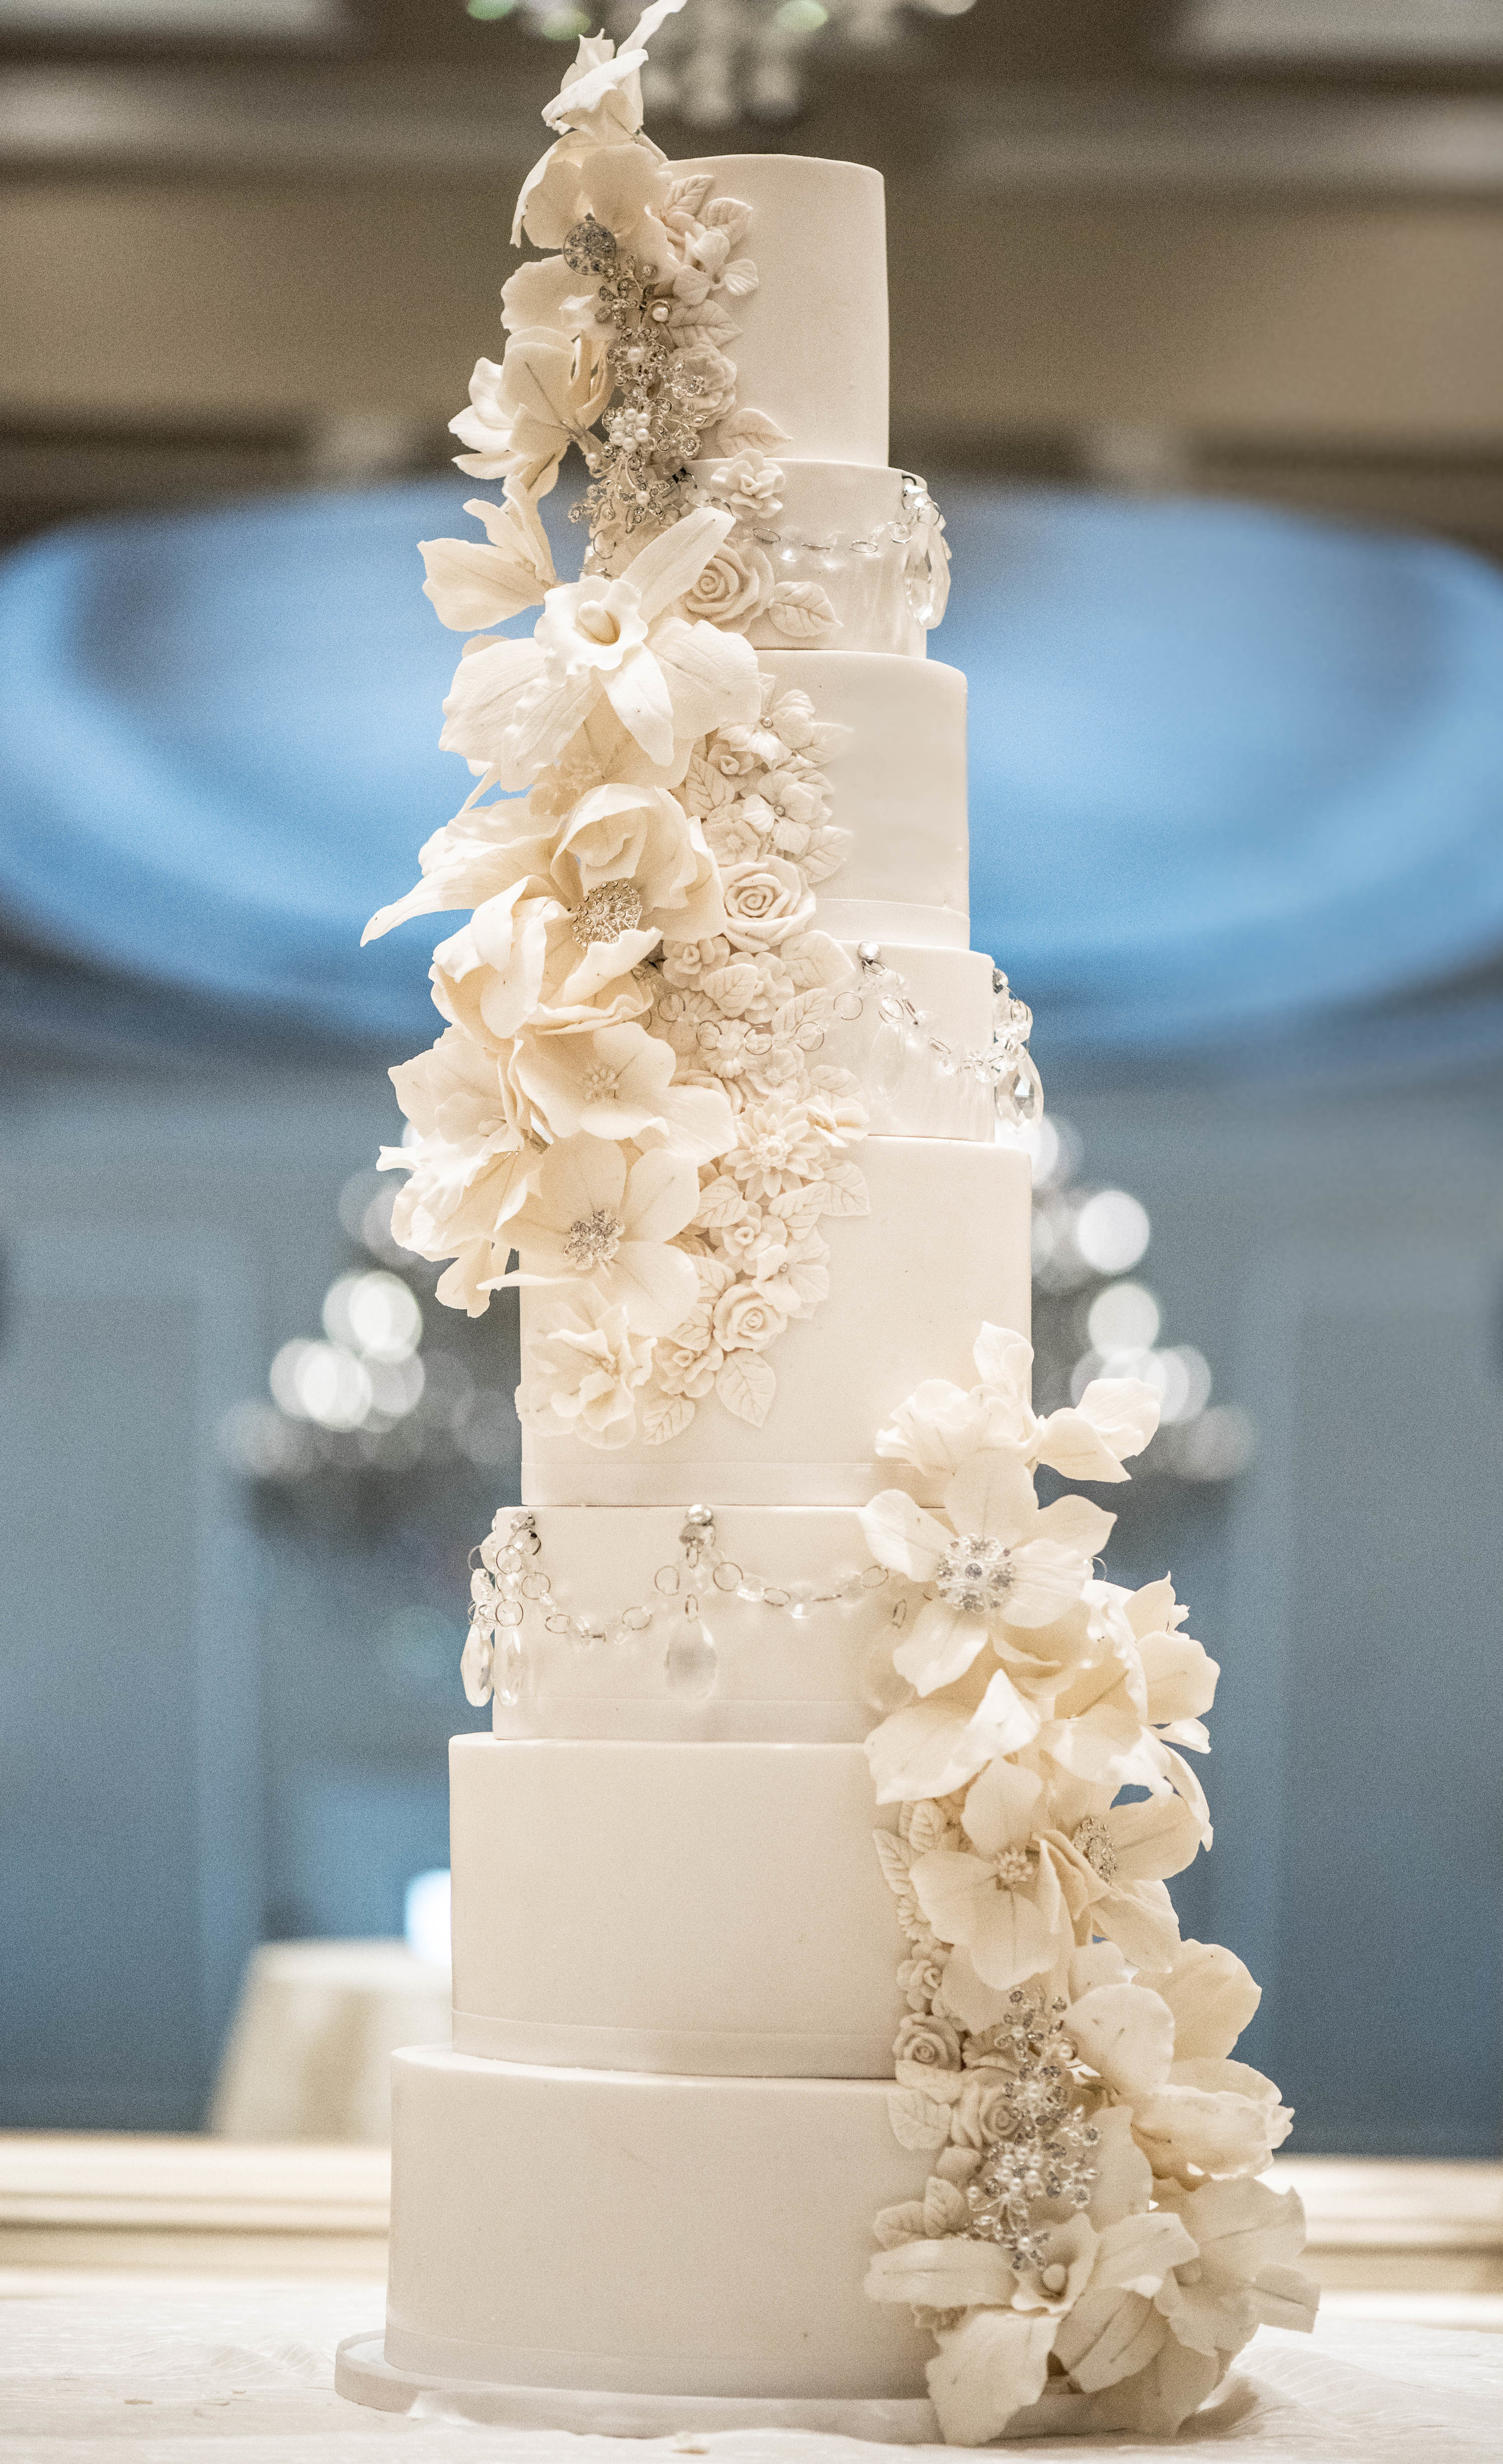 The towering cake was 8-tiers and 36 inches tall. -